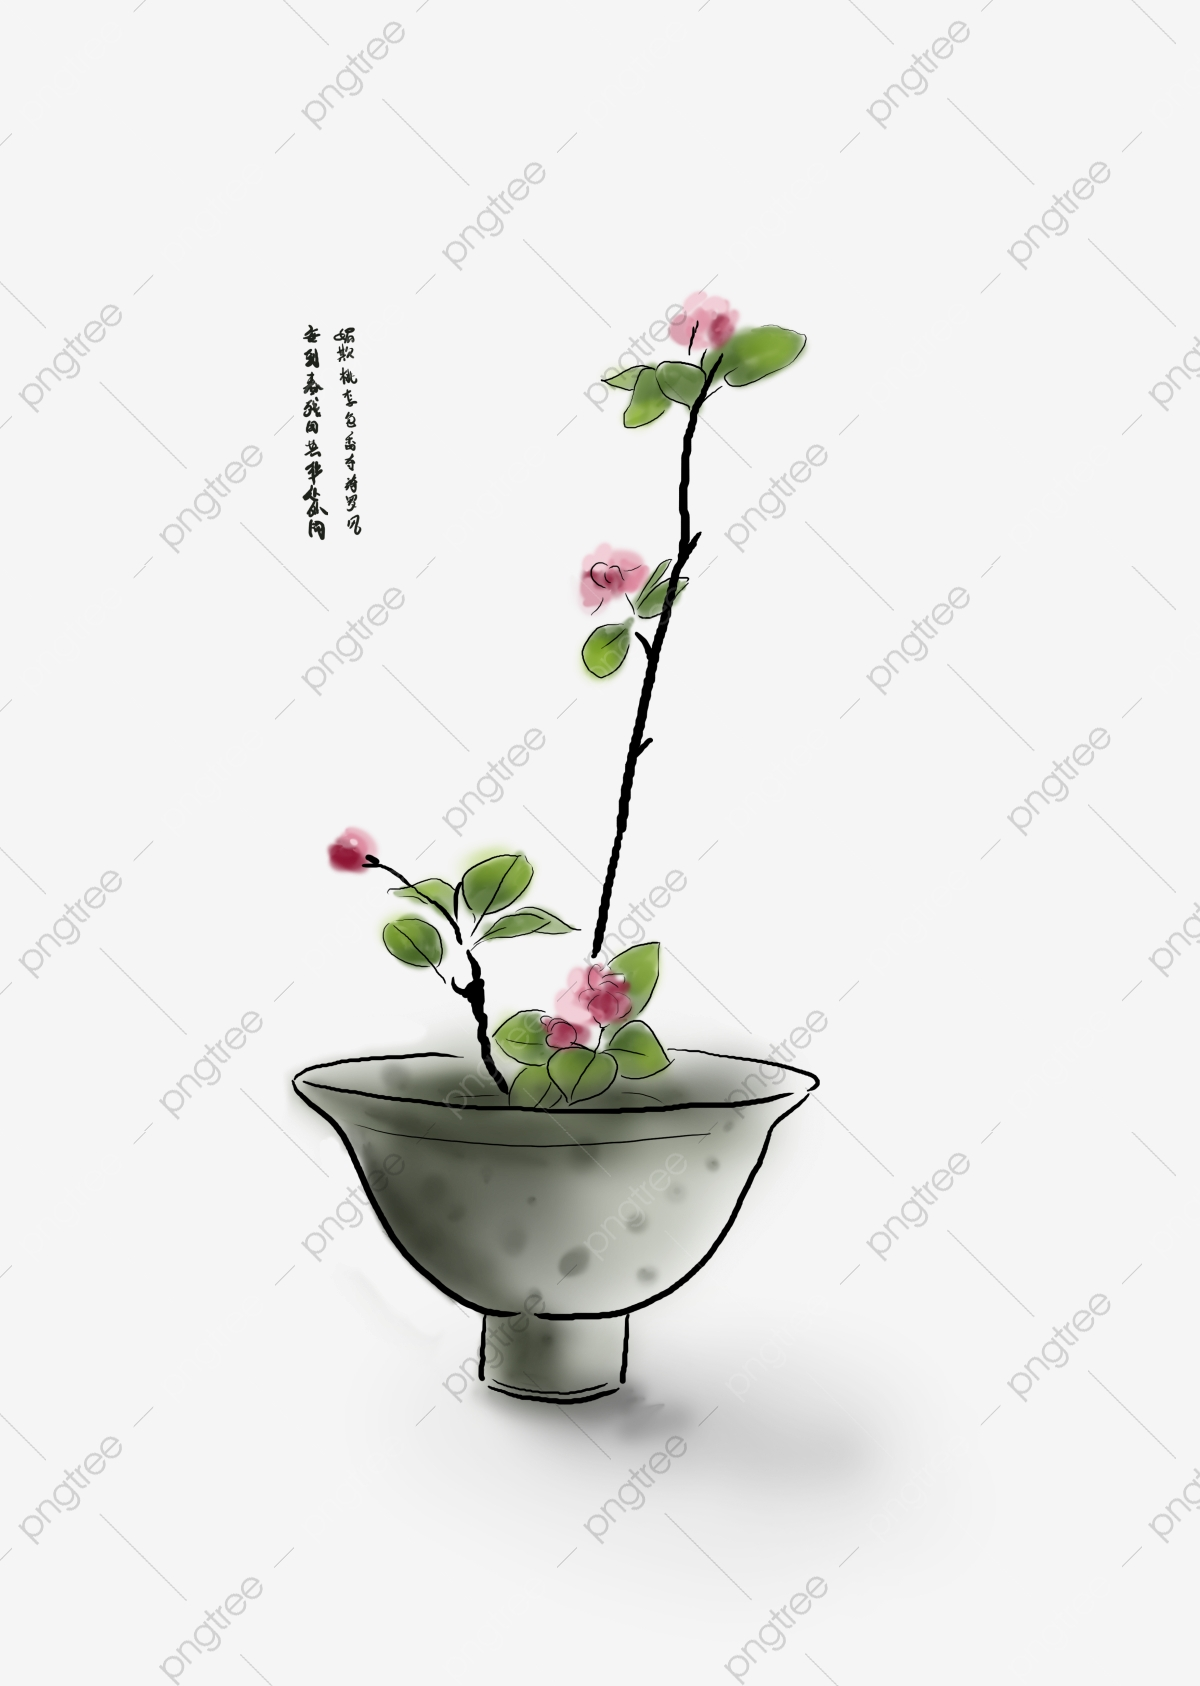 China antiquity traditional plum. Planting clipart pink plant